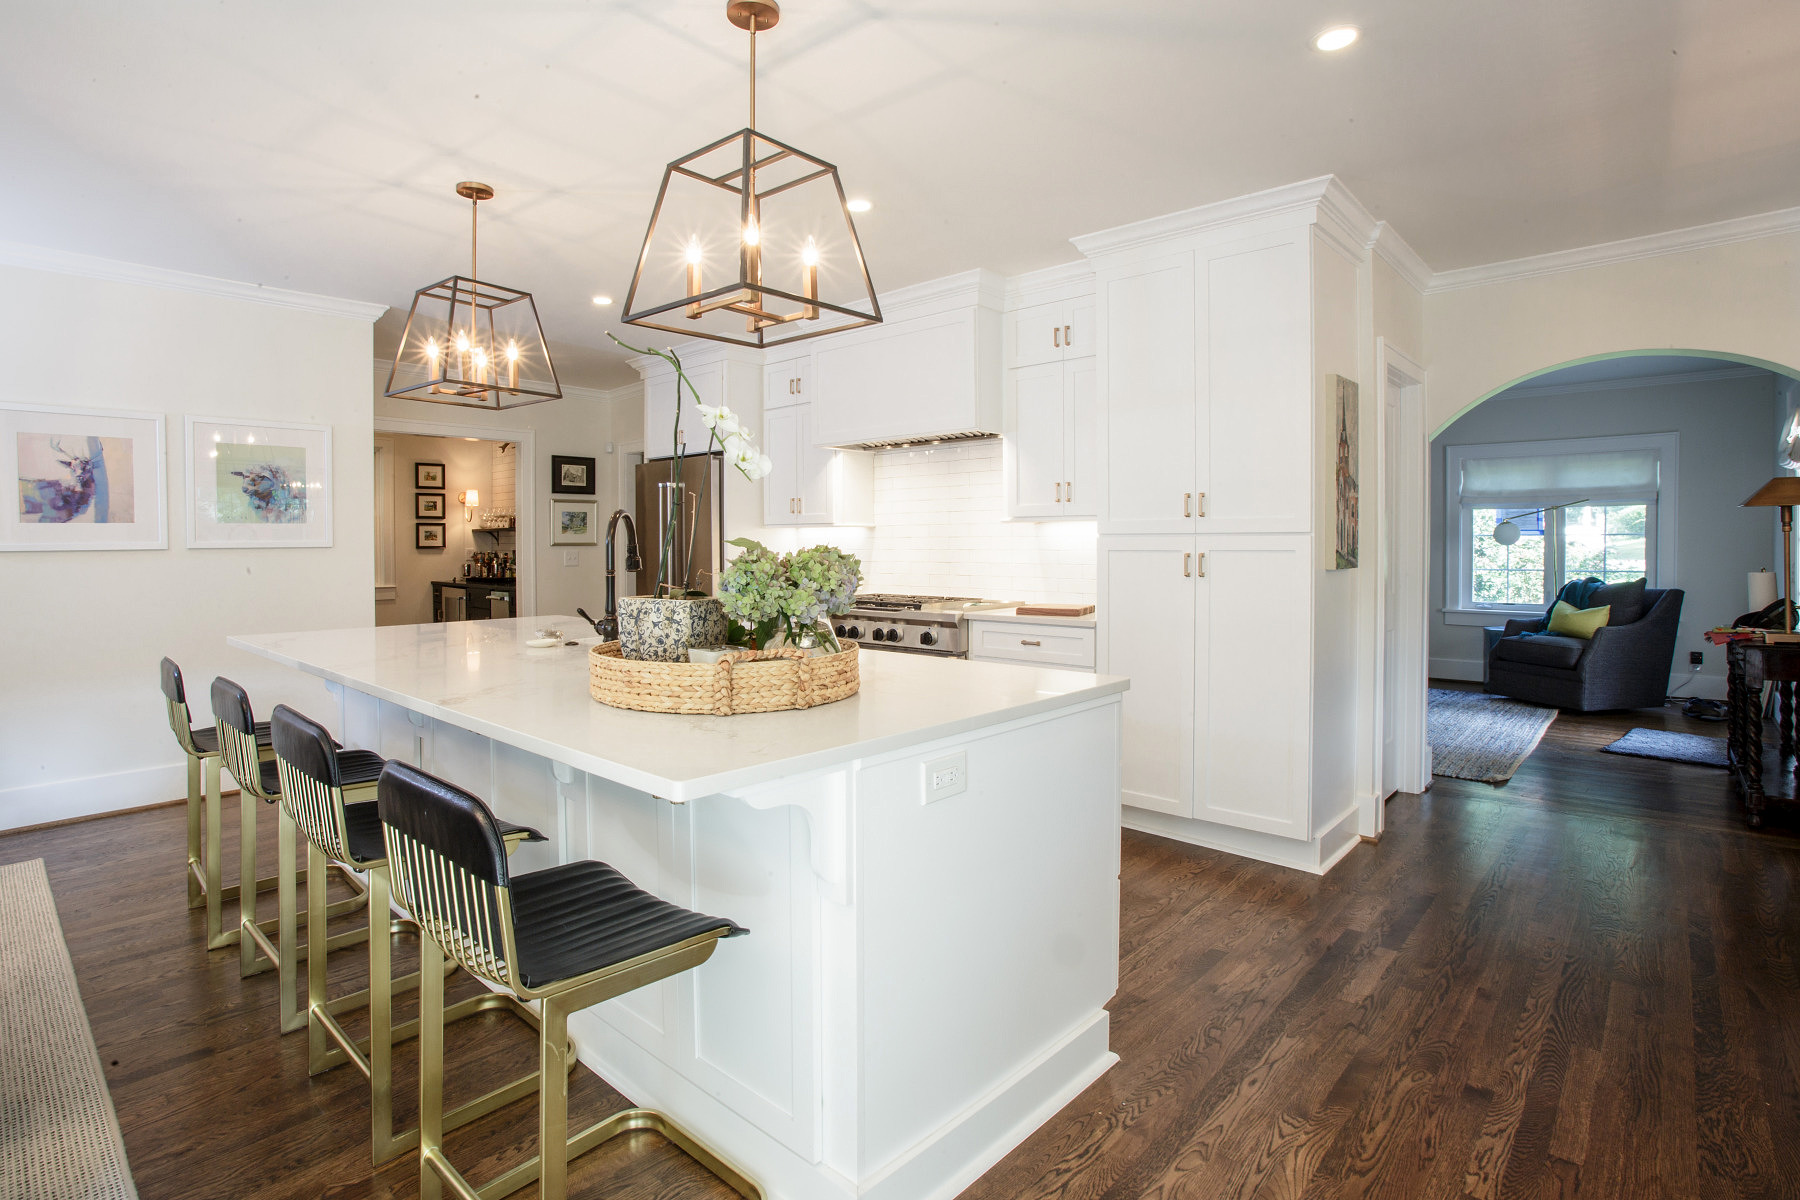 White kitchen with brass accents in Nashville home